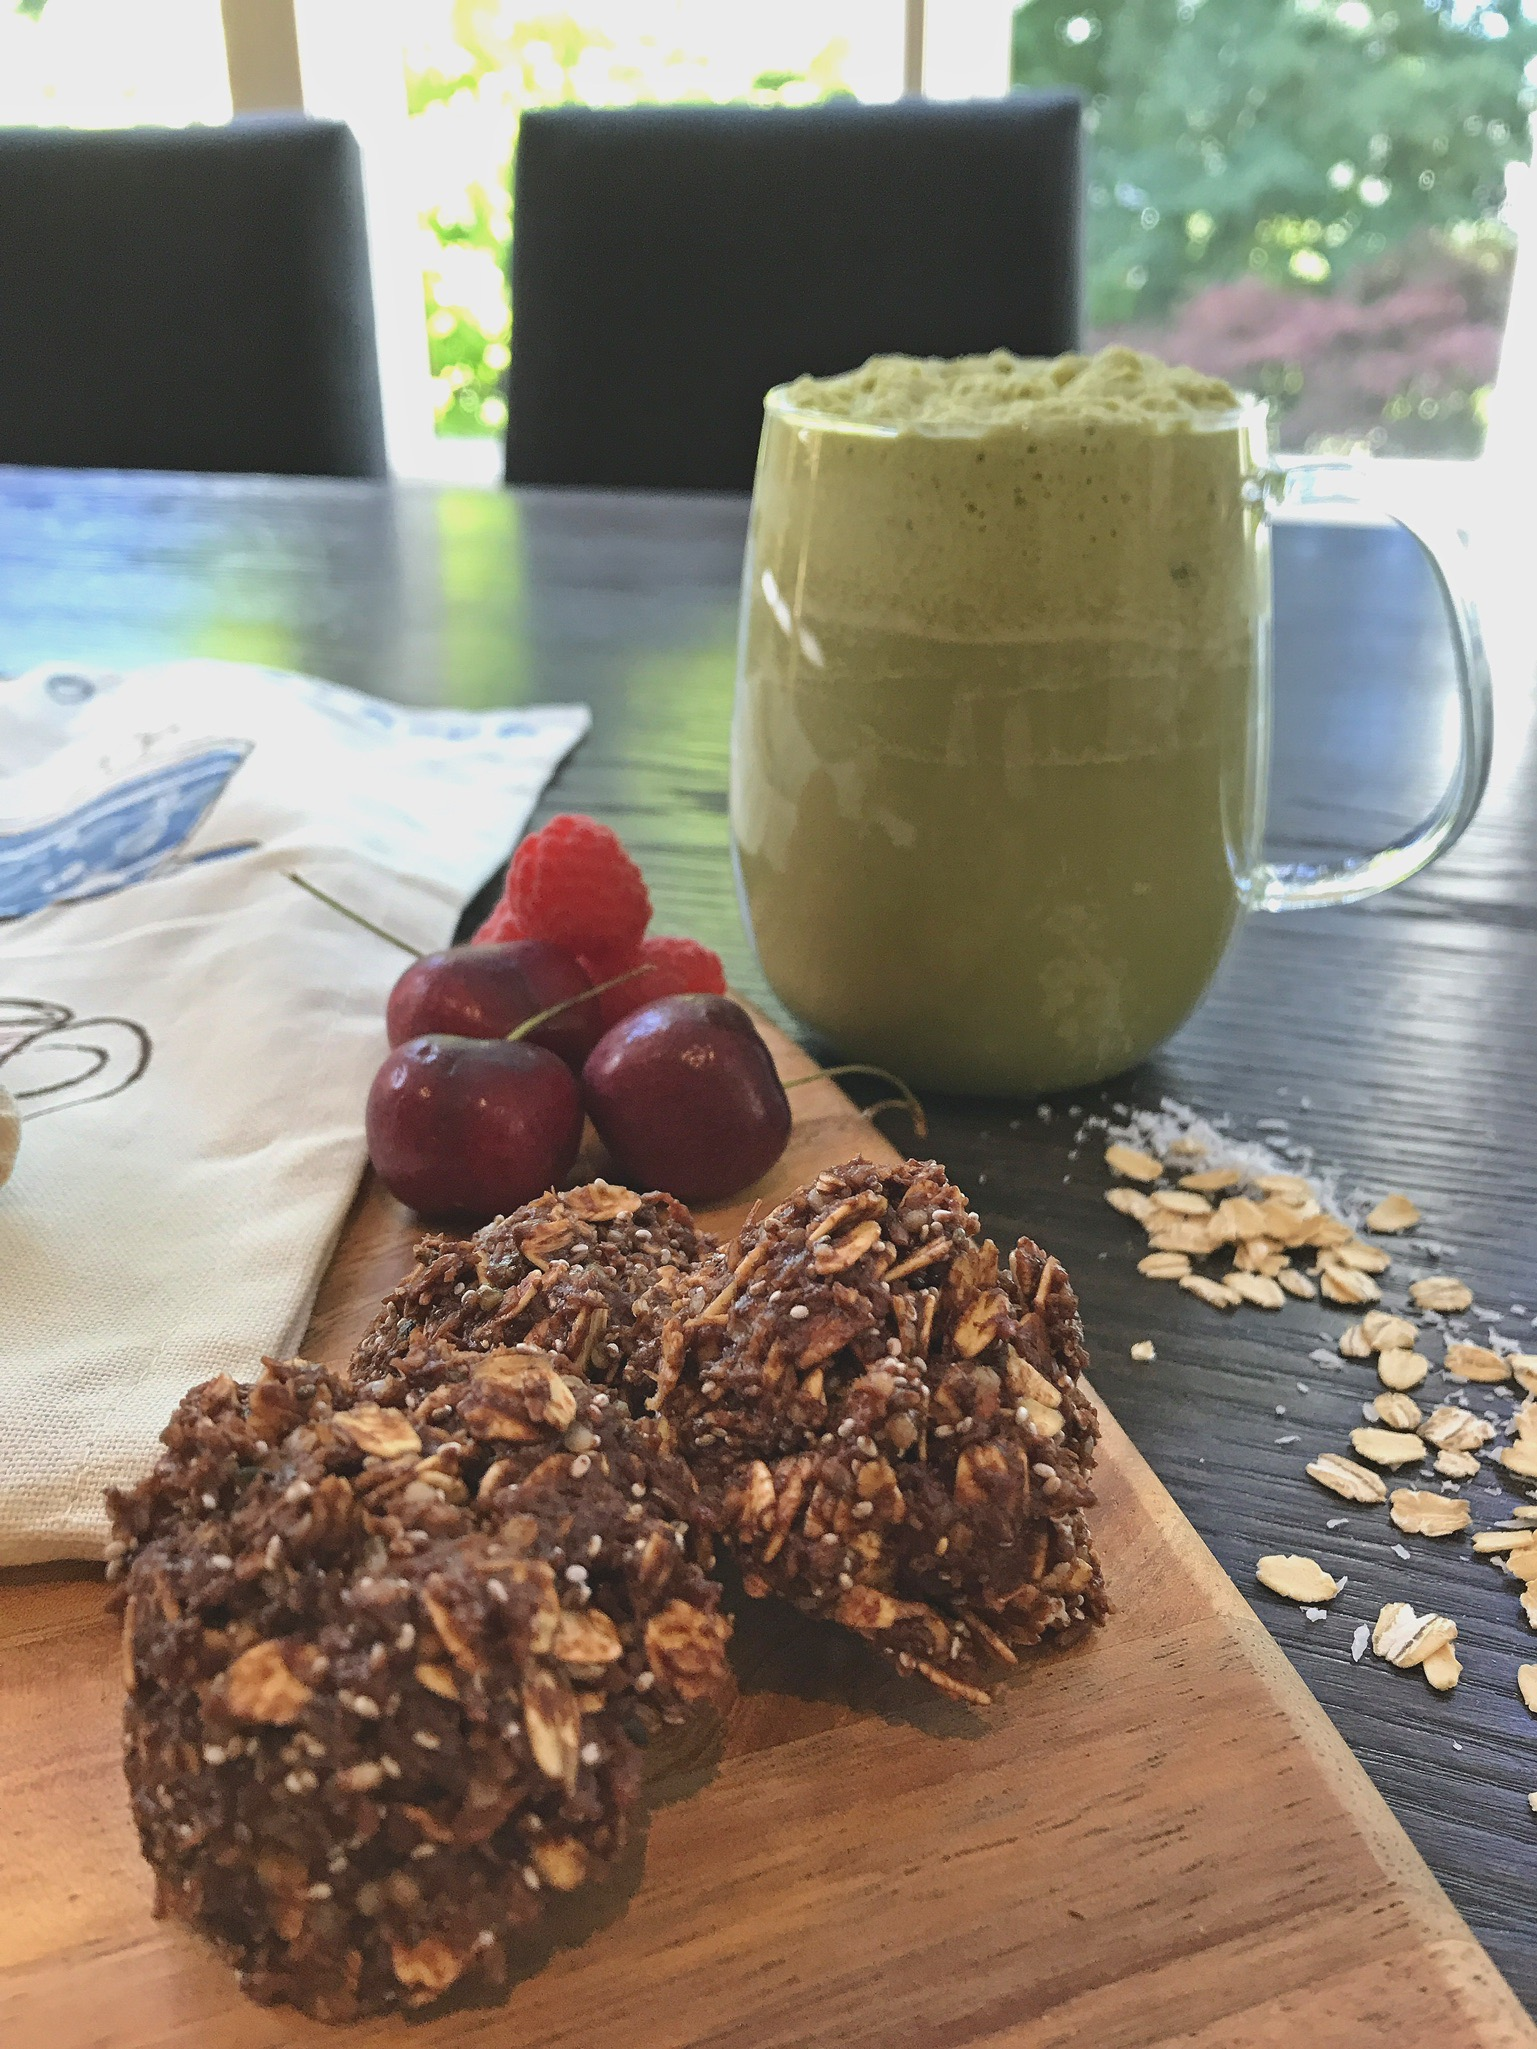 Chocolate Oatmeal Haystacks made with quinoa flakes and served with an iced  loaded matcha latte .